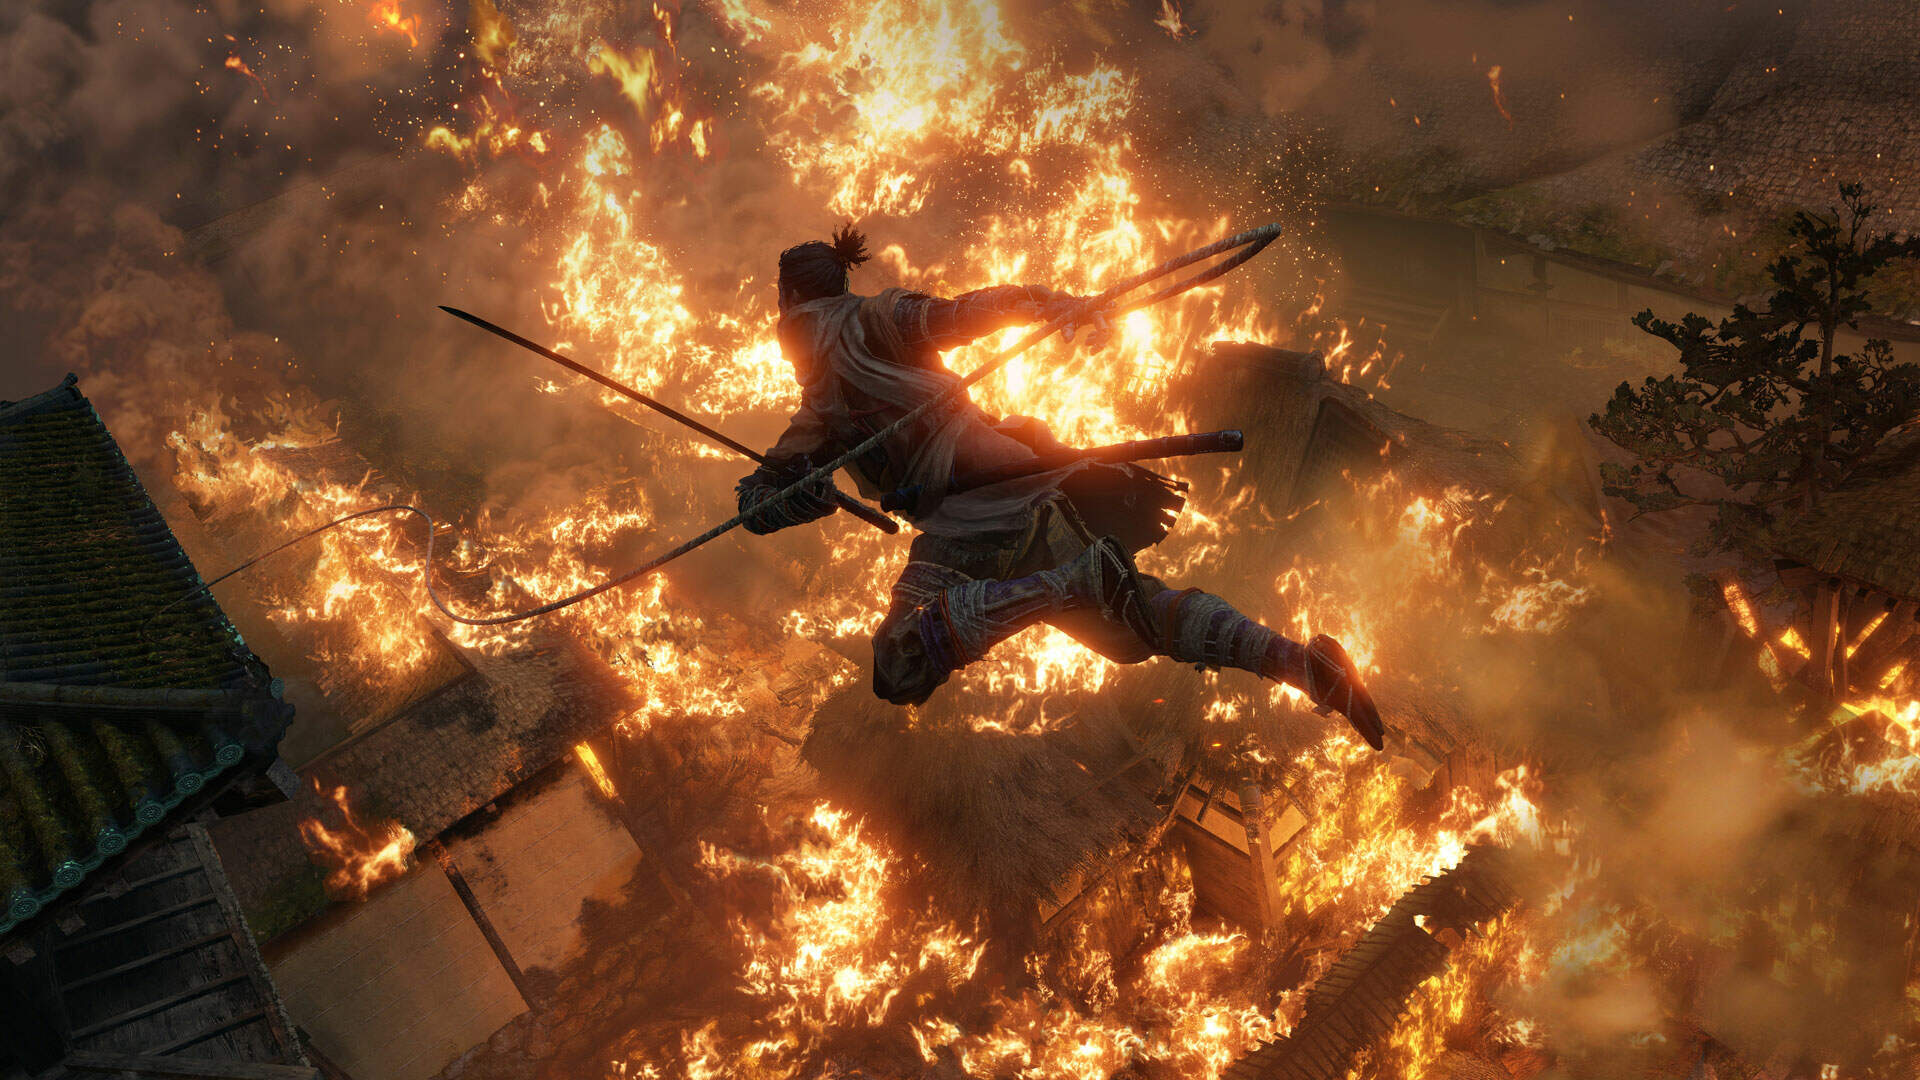 Is Sekiro on Switch - Which Version of Sekiro is Best? PS4 or Xbox One?